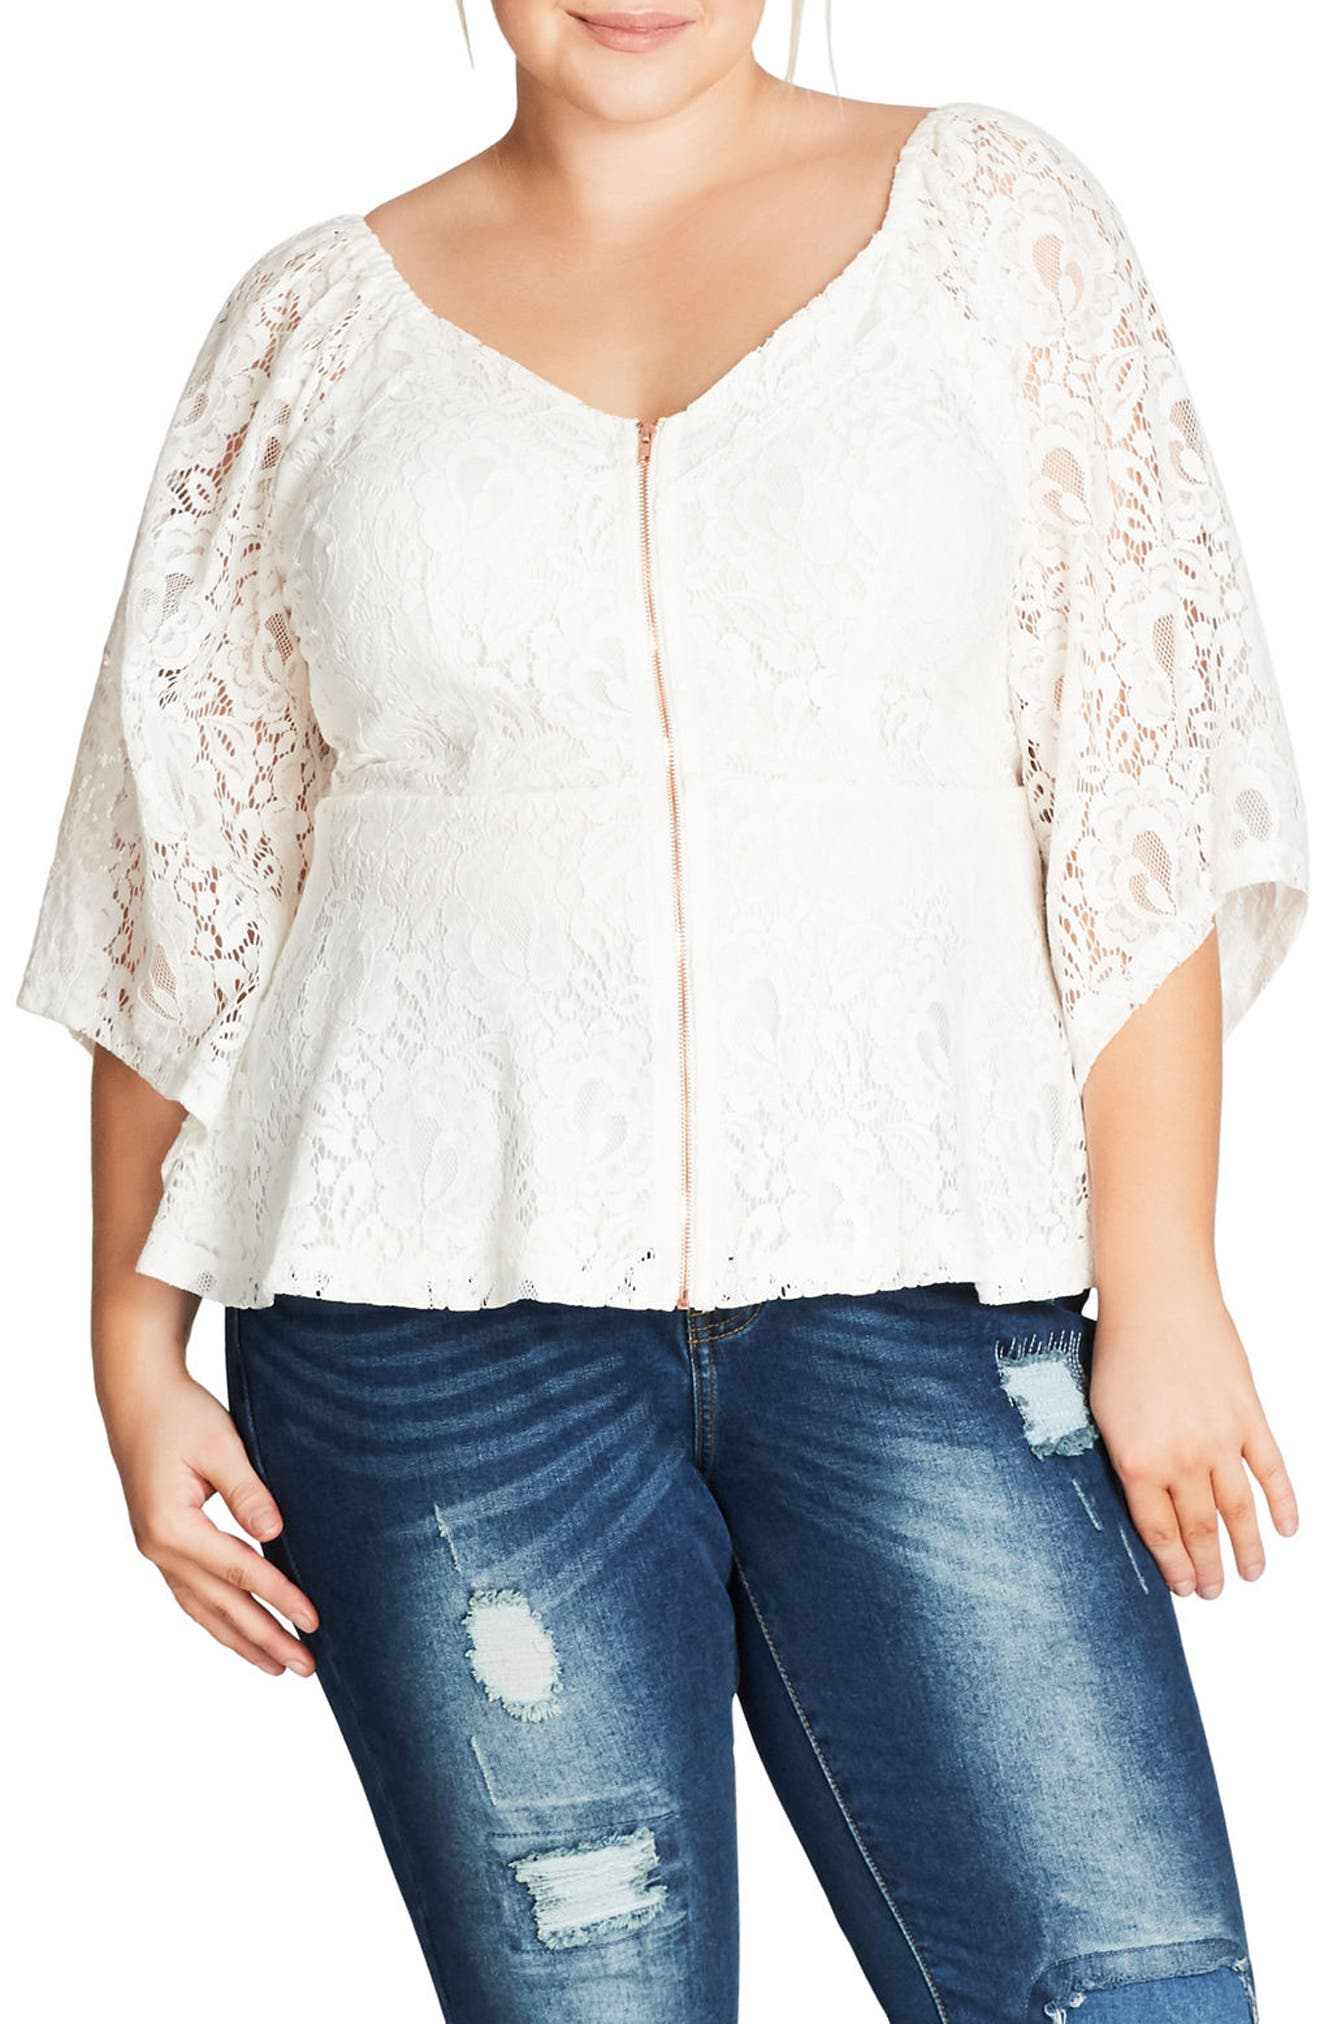 Alternate Image 1 Selected - City Chic Sheer Romance Lace Top (Plus Size)